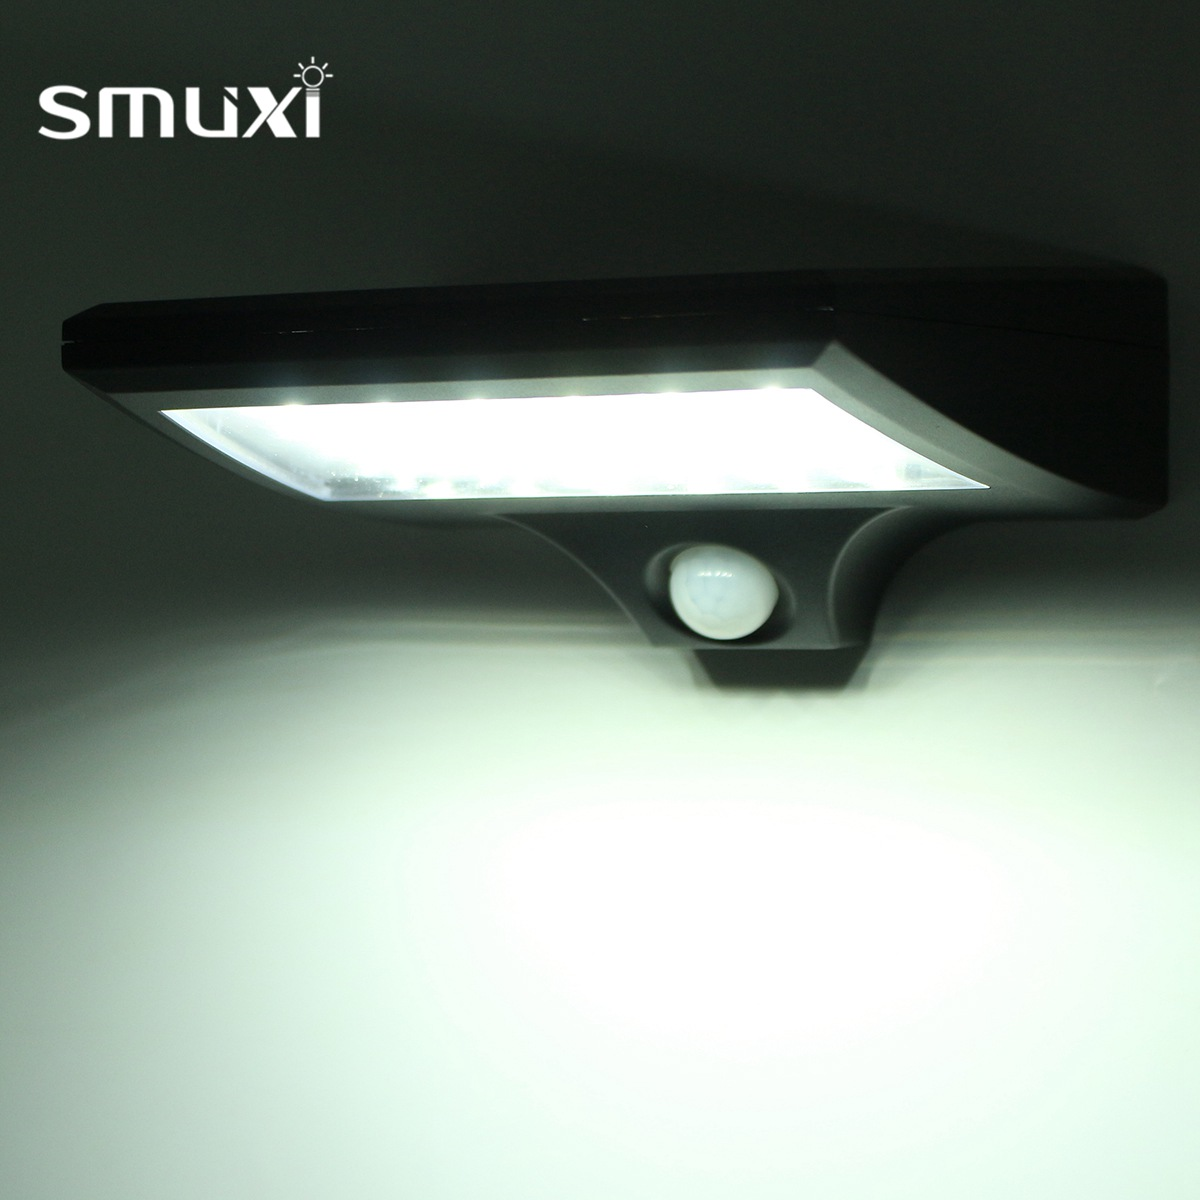 Smuxi Waterproof 30 LED Solar Power PIR Motion Sensor Wall Light Outdoor Garden Lamp Elec-Mall Solar Power Wall LampSmuxi Waterproof 30 LED Solar Power PIR Motion Sensor Wall Light Outdoor Garden Lamp Elec-Mall Solar Power Wall Lamp